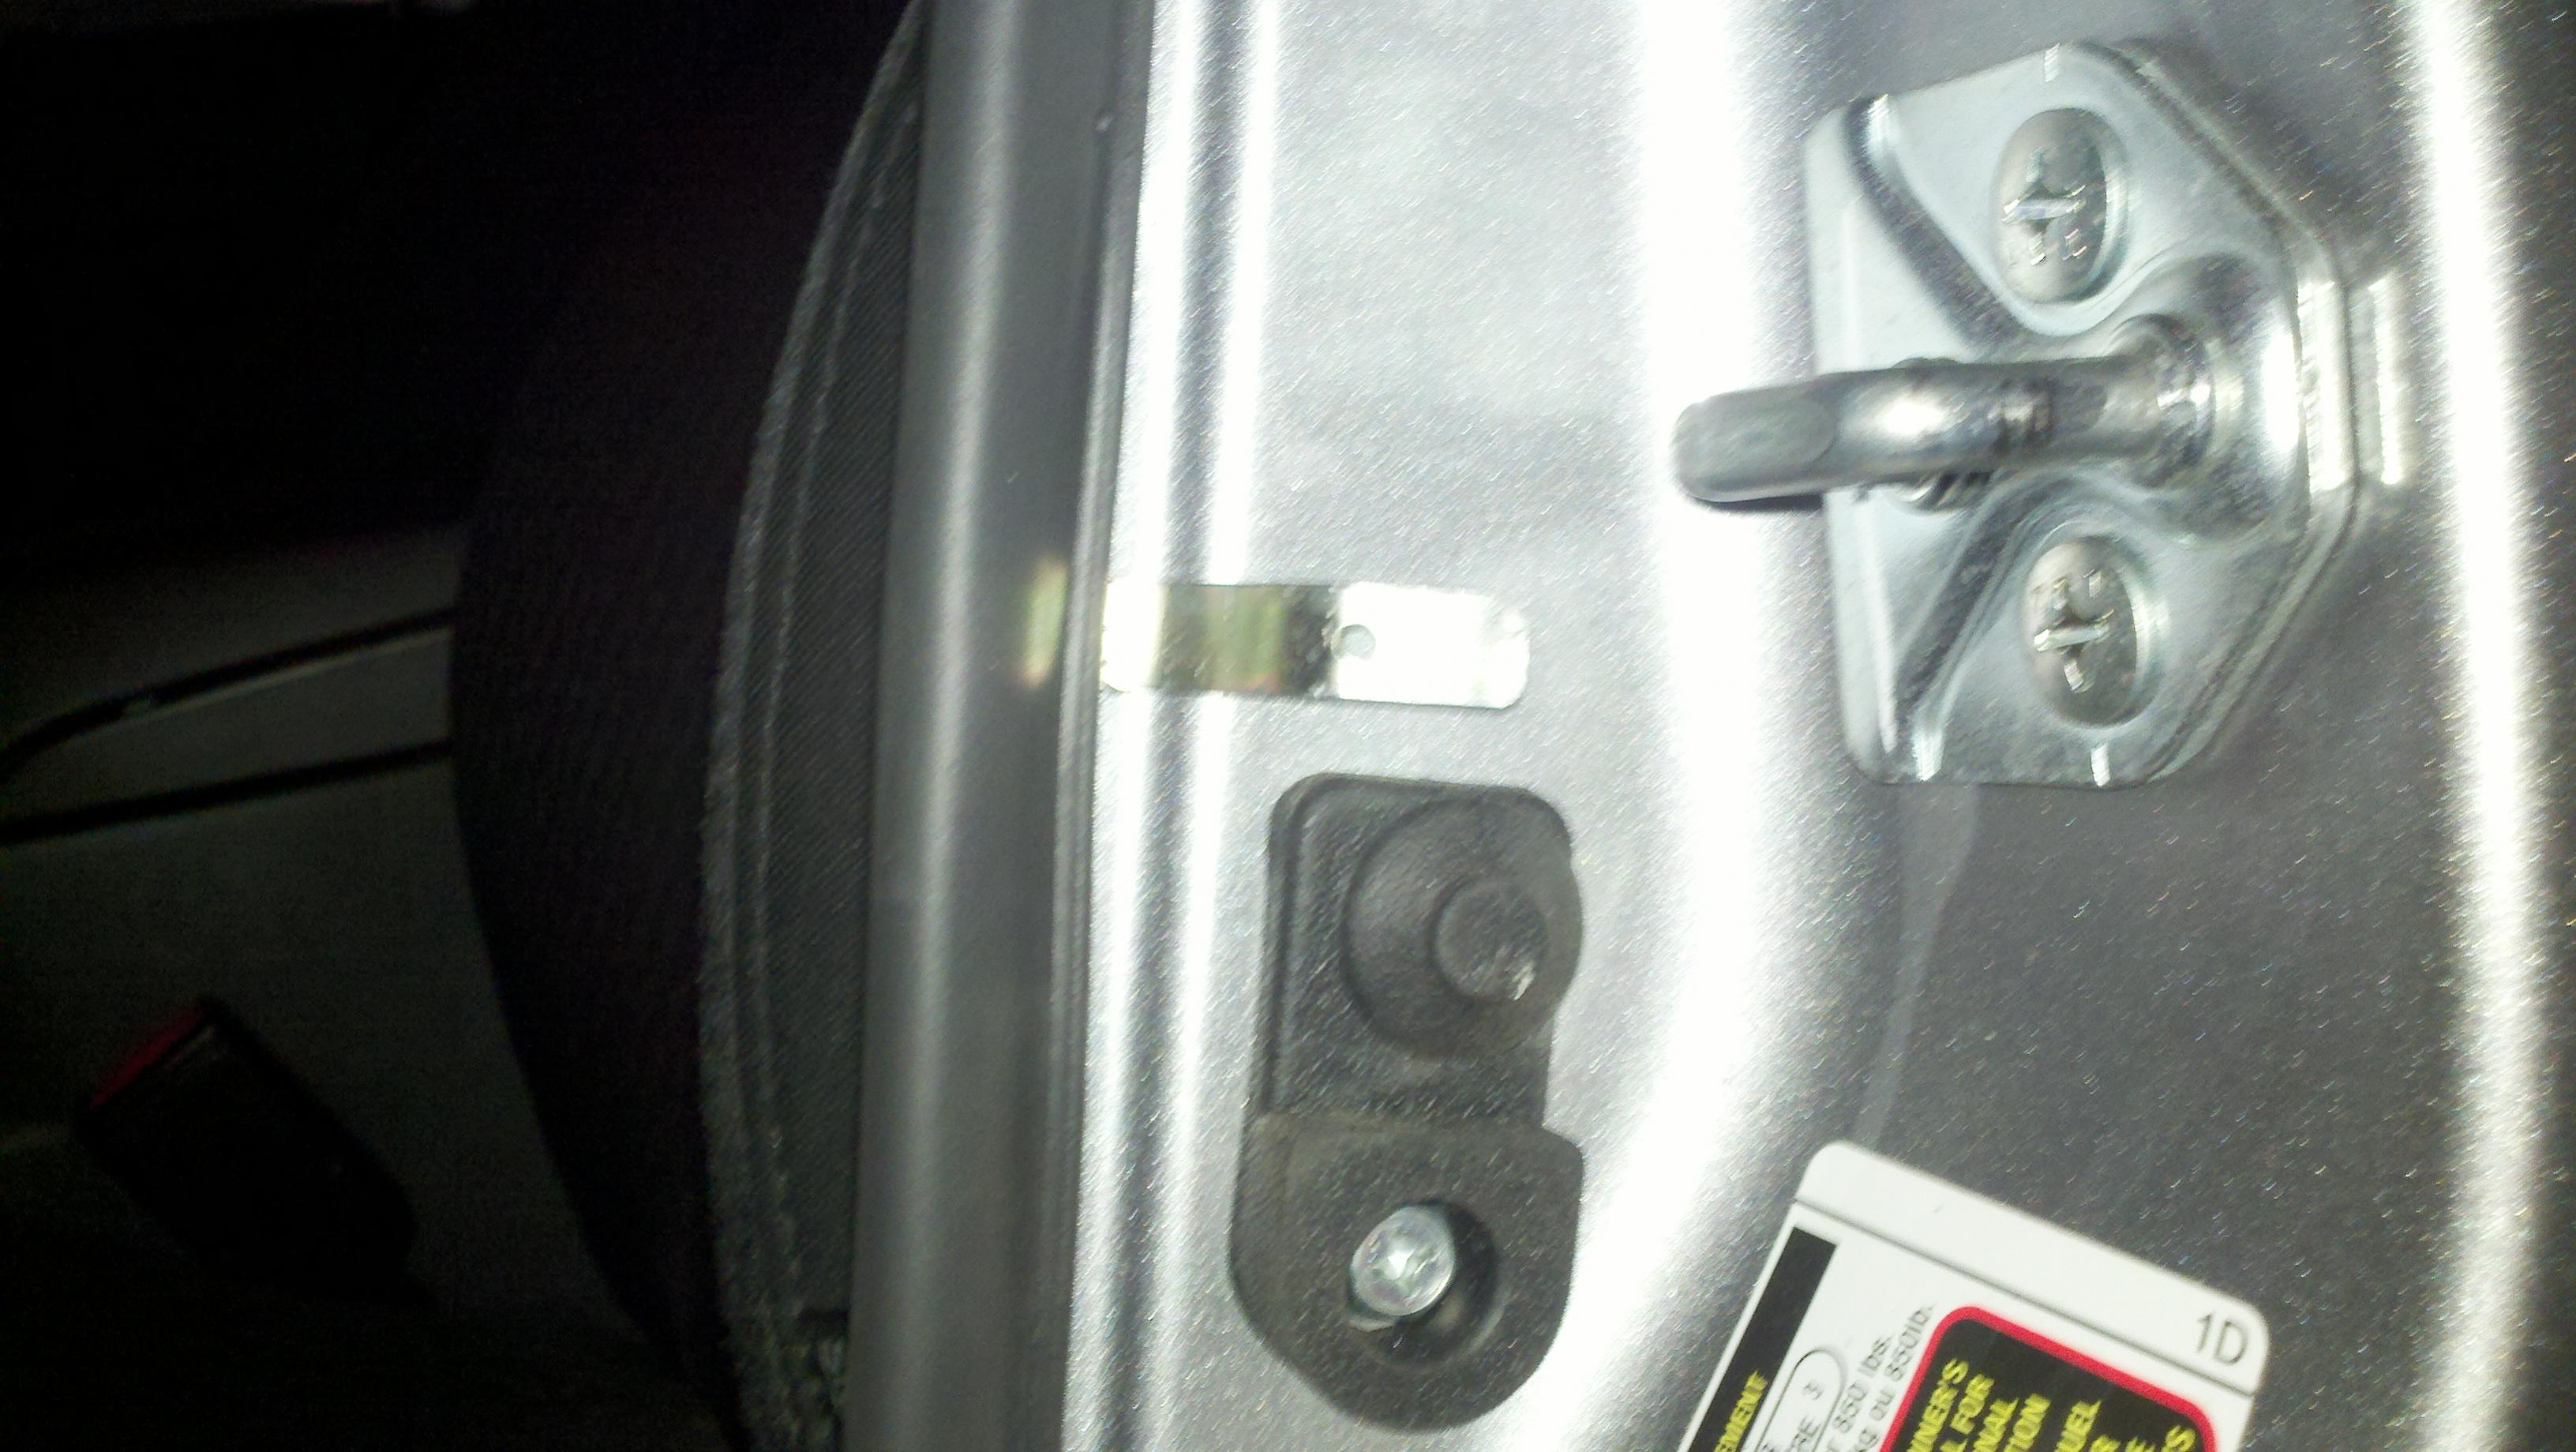 Black Ford Edge 2014 >> *OEM Remote Start SOLUTION* for car shutting off when door opened - Subaru Outback - Subaru ...